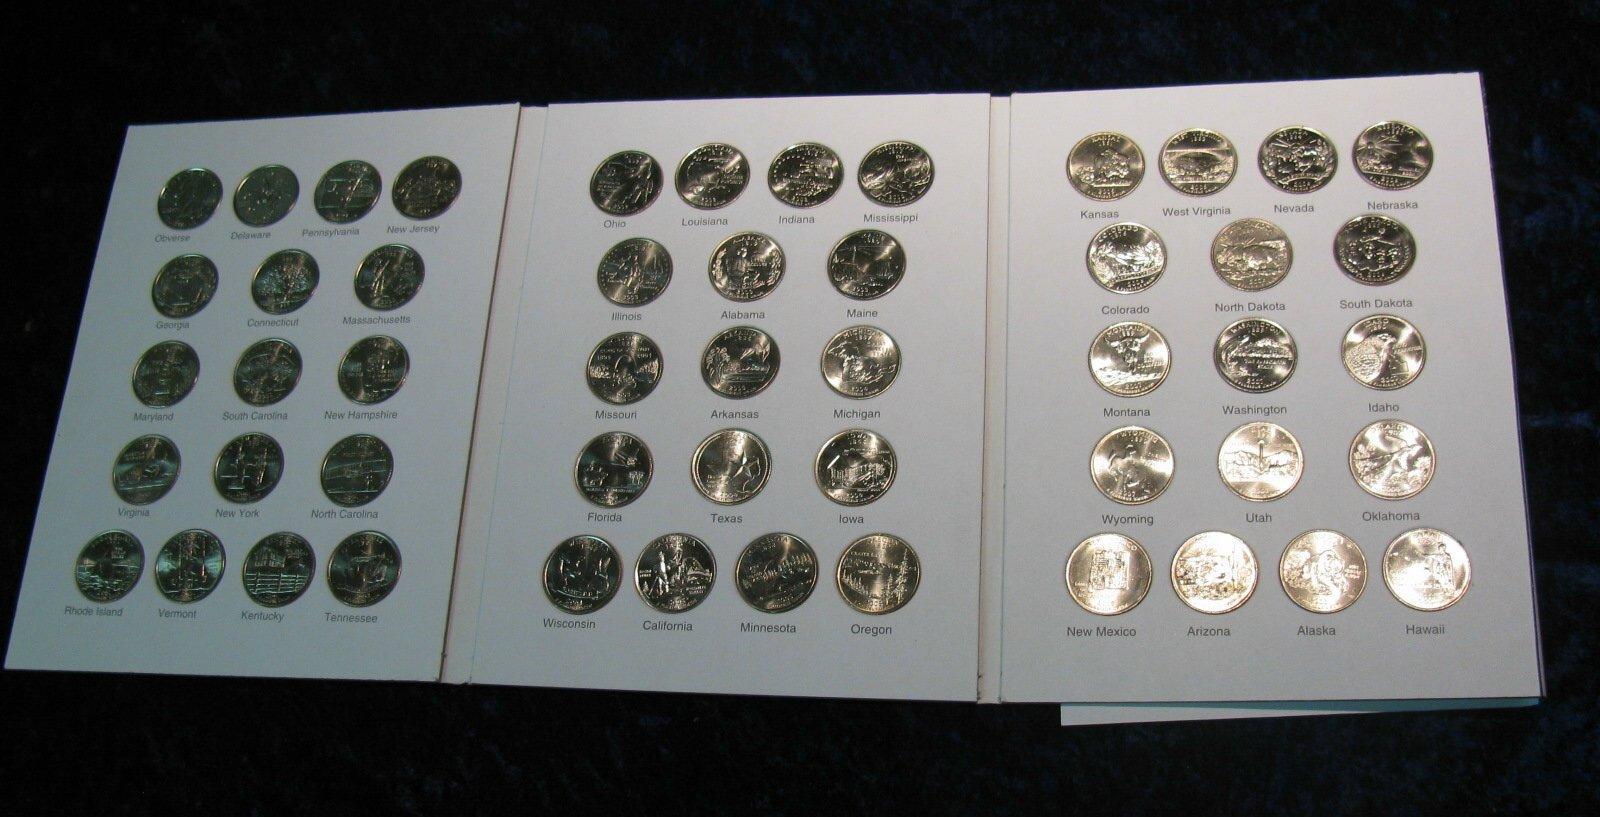 State Complete Commemorative Quarter Set In Marcus Coin - Complete 50 state quarter set